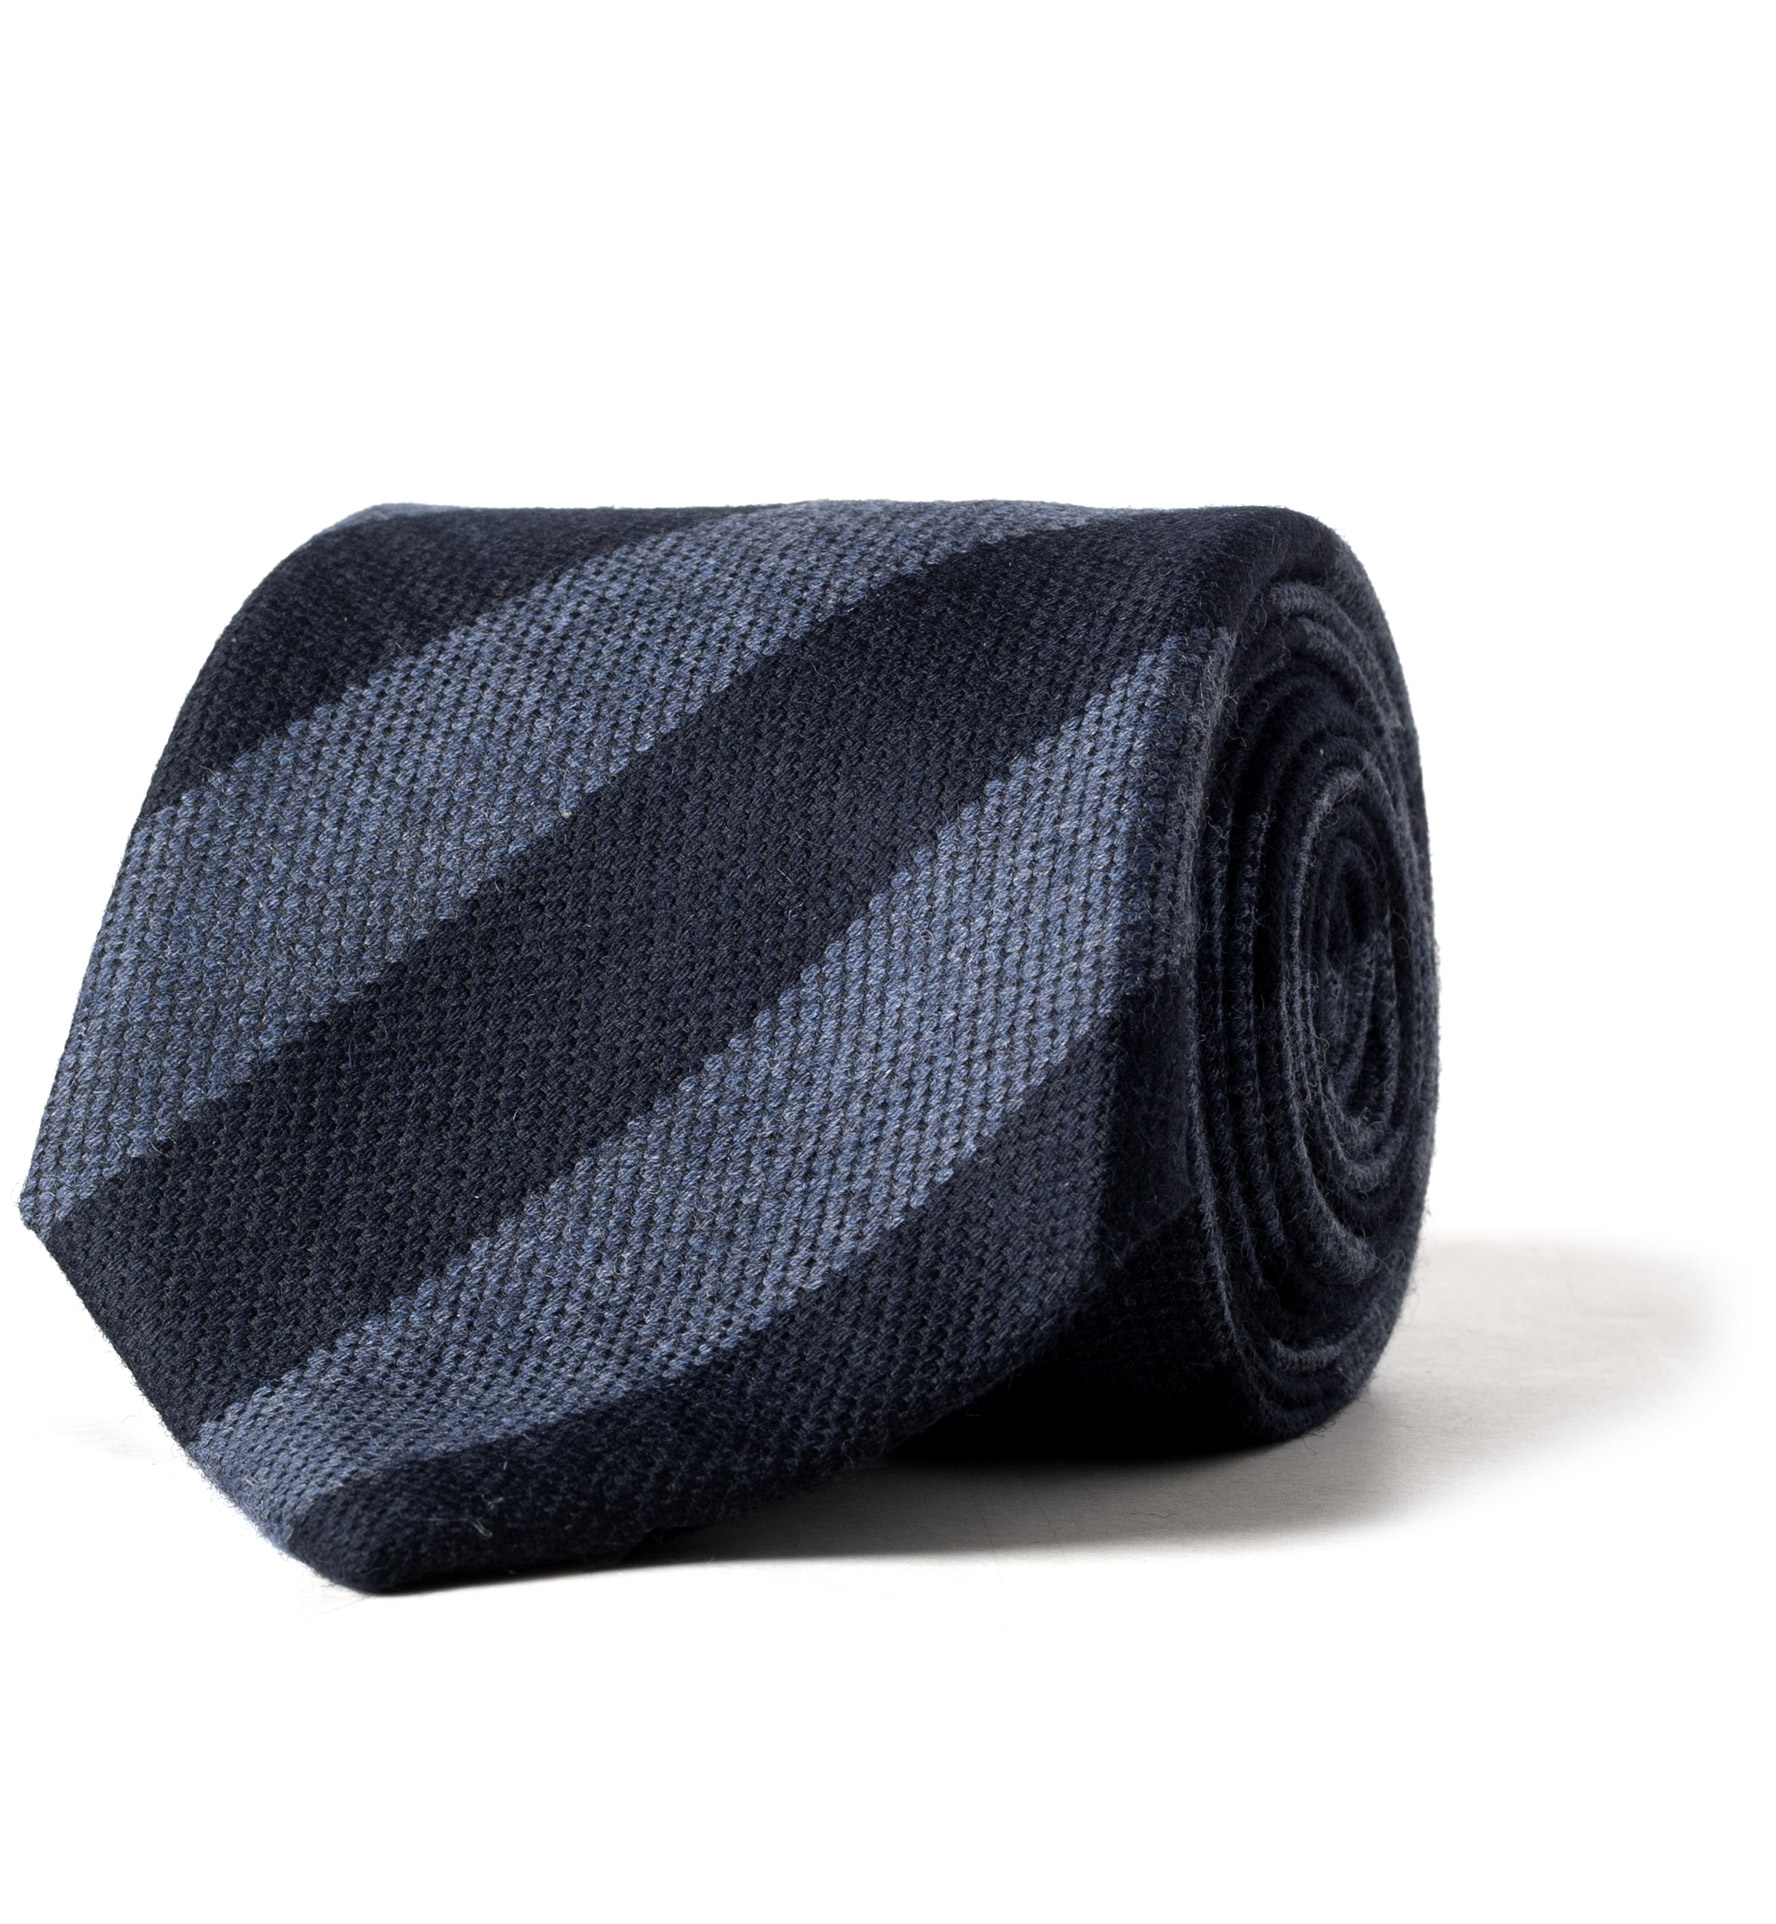 Zoom Image of Navy and Light Blue Wool and Silk Striped Tie